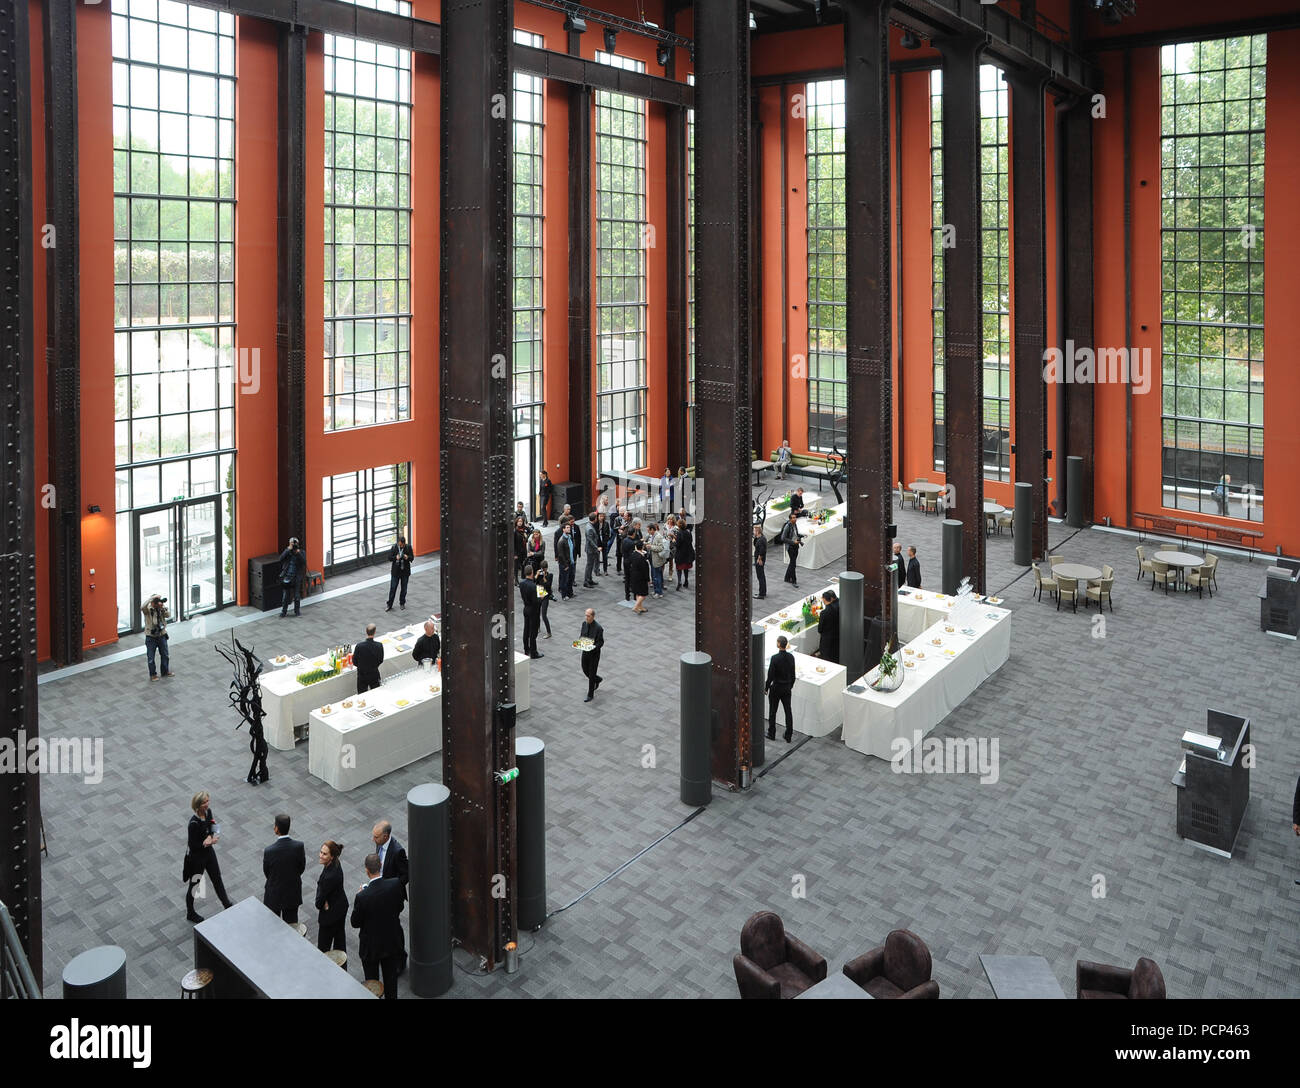 September 21, 2012 - Saint-Denis, France: French filmmaker Luc Besson unveils his 'cinema city' (Cite du Cinema) on the edge of Paris. The 170-million-euros project is the largest film studio facility ever built in France, which earned it the nickname 'Hollywood on Seine'. The former art deco power station compound houses nine state-of-the-art film sets, 20,000sq metres of office, and several carpentry, model-making, and costume workshops. *** FRANCE OUT / NO SALES TO FRENCH MEDIA *** - Stock Image